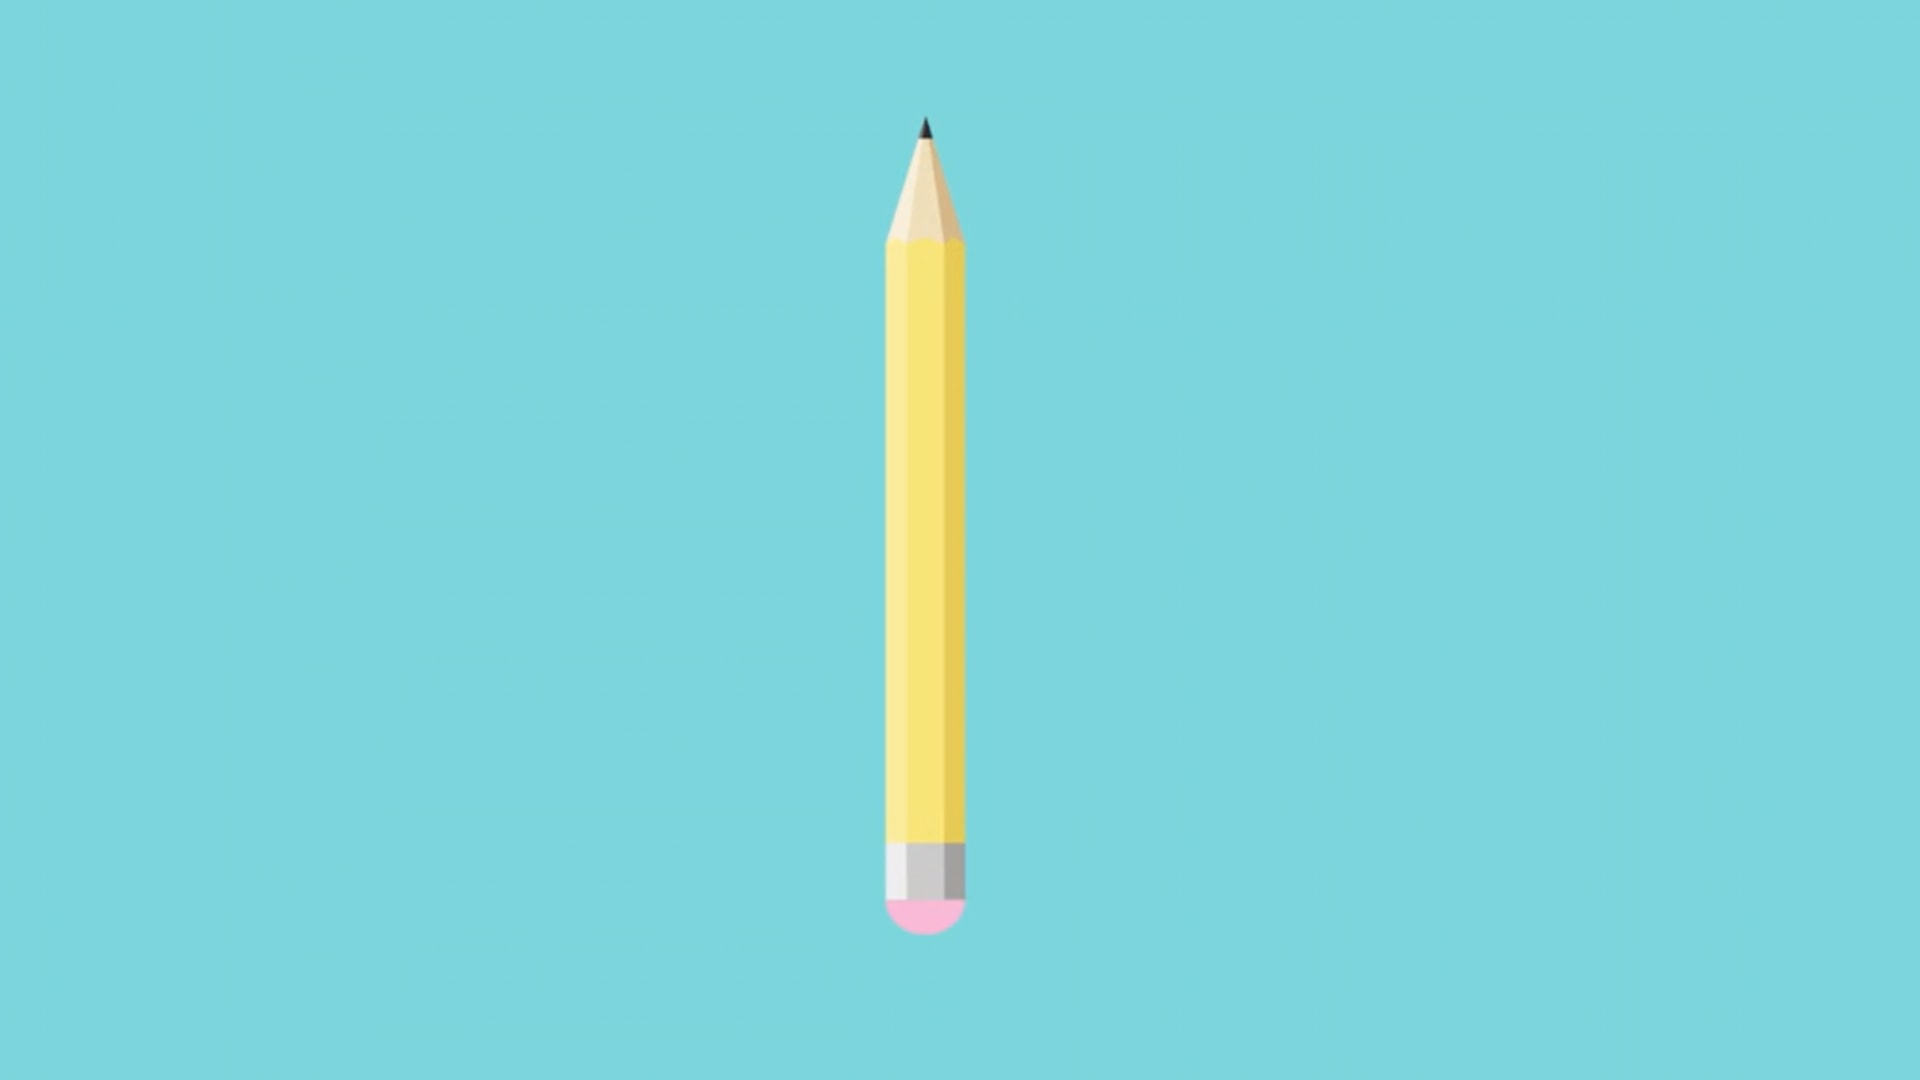 No 2: Story of the Pencil Featured